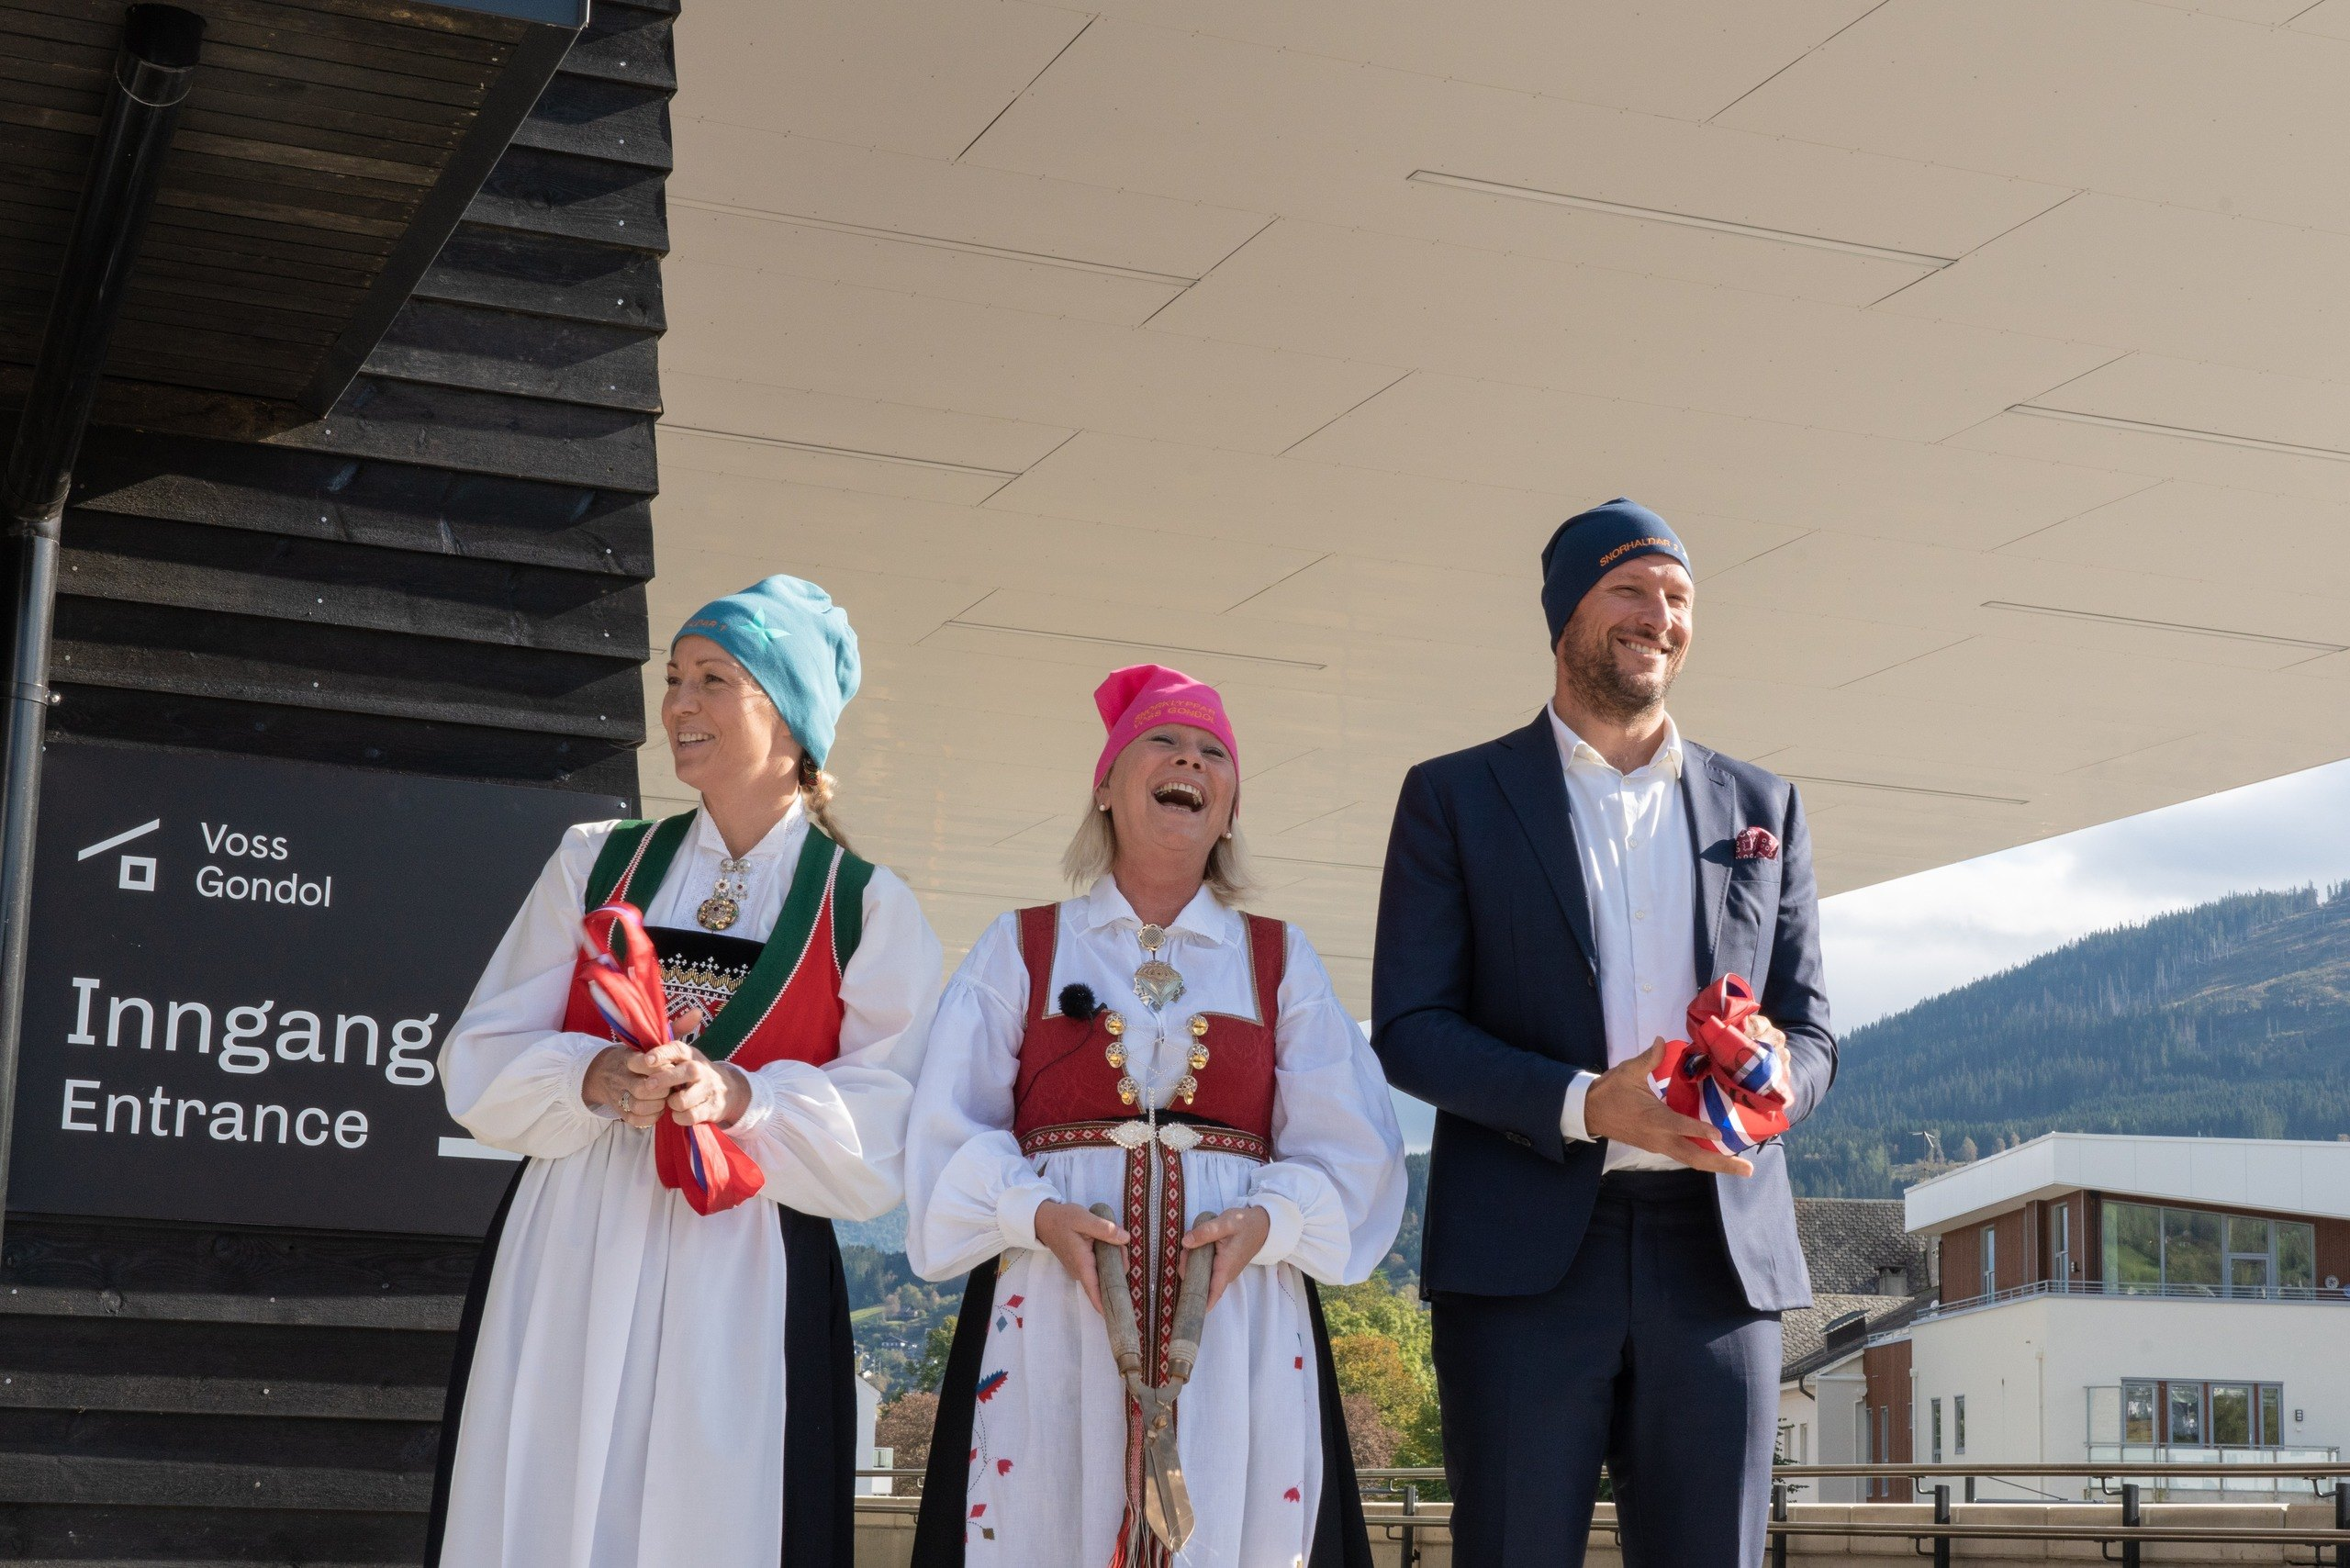 Voss' very own Kari Traa (former olympic freestyle skier), Monica Mæland (Minister of Local Government) and Aksel Lund Svindal (former World Cup and olympic ski racer)